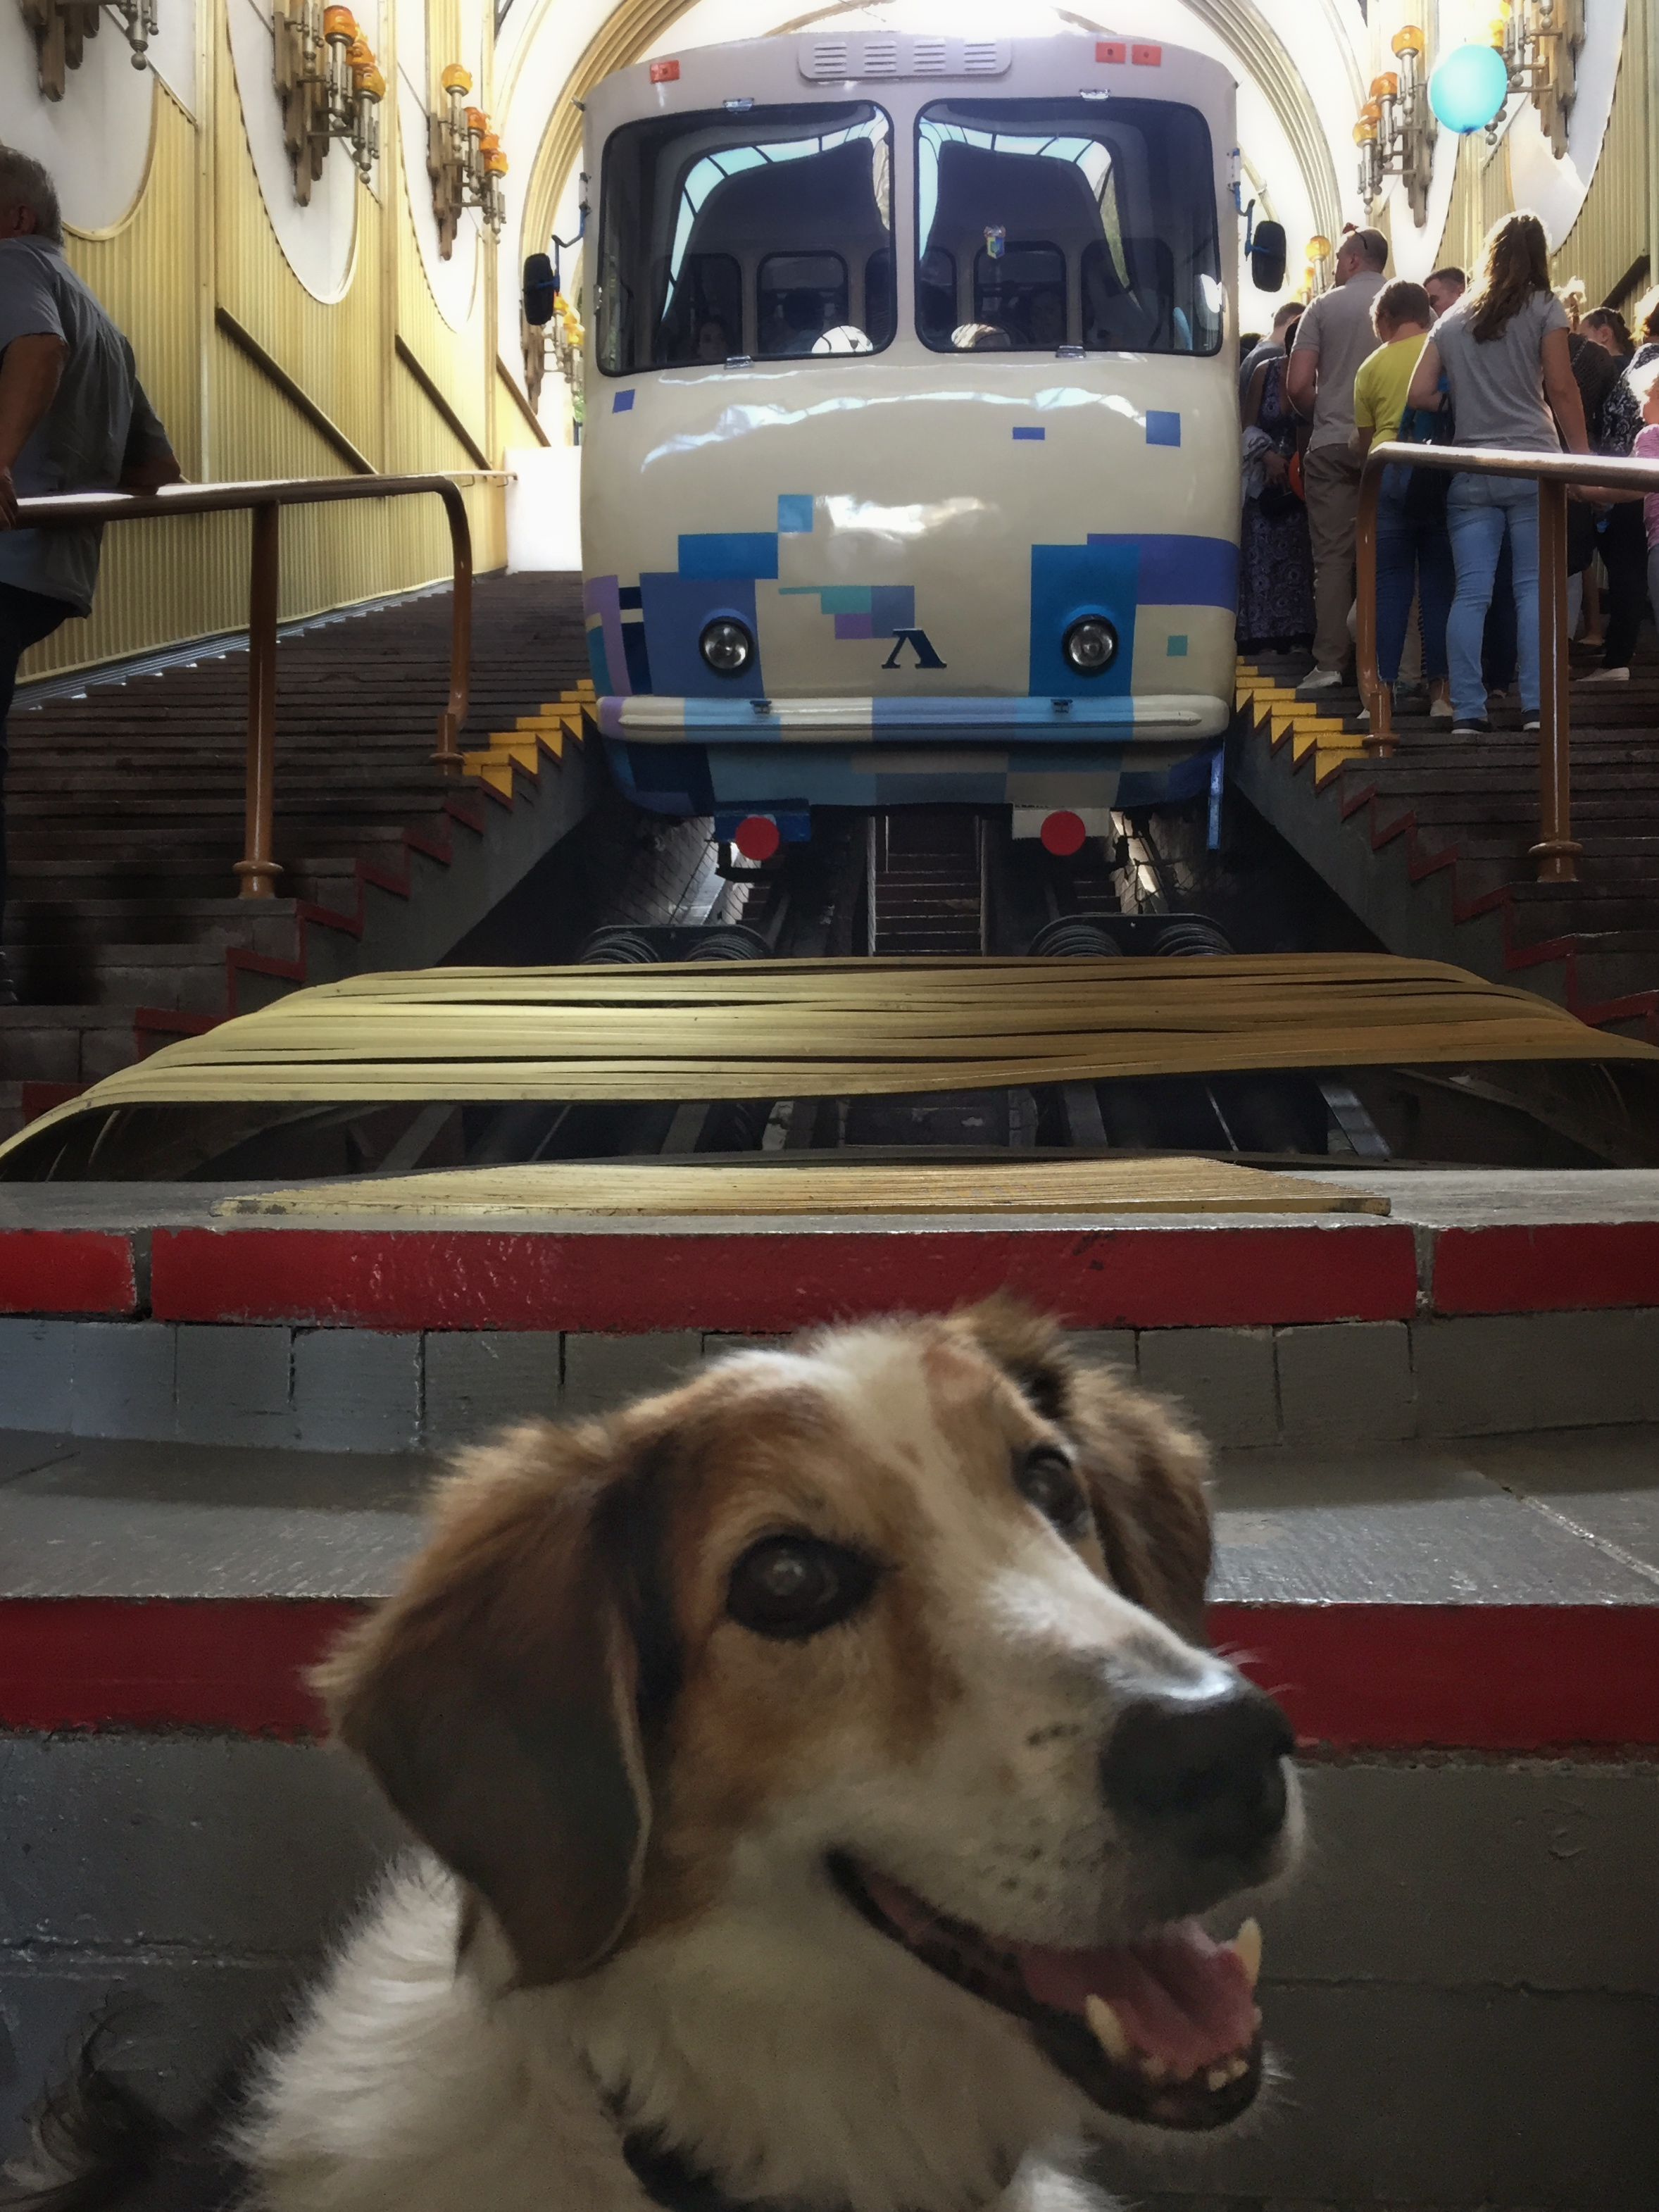 someone liked the funicular...!